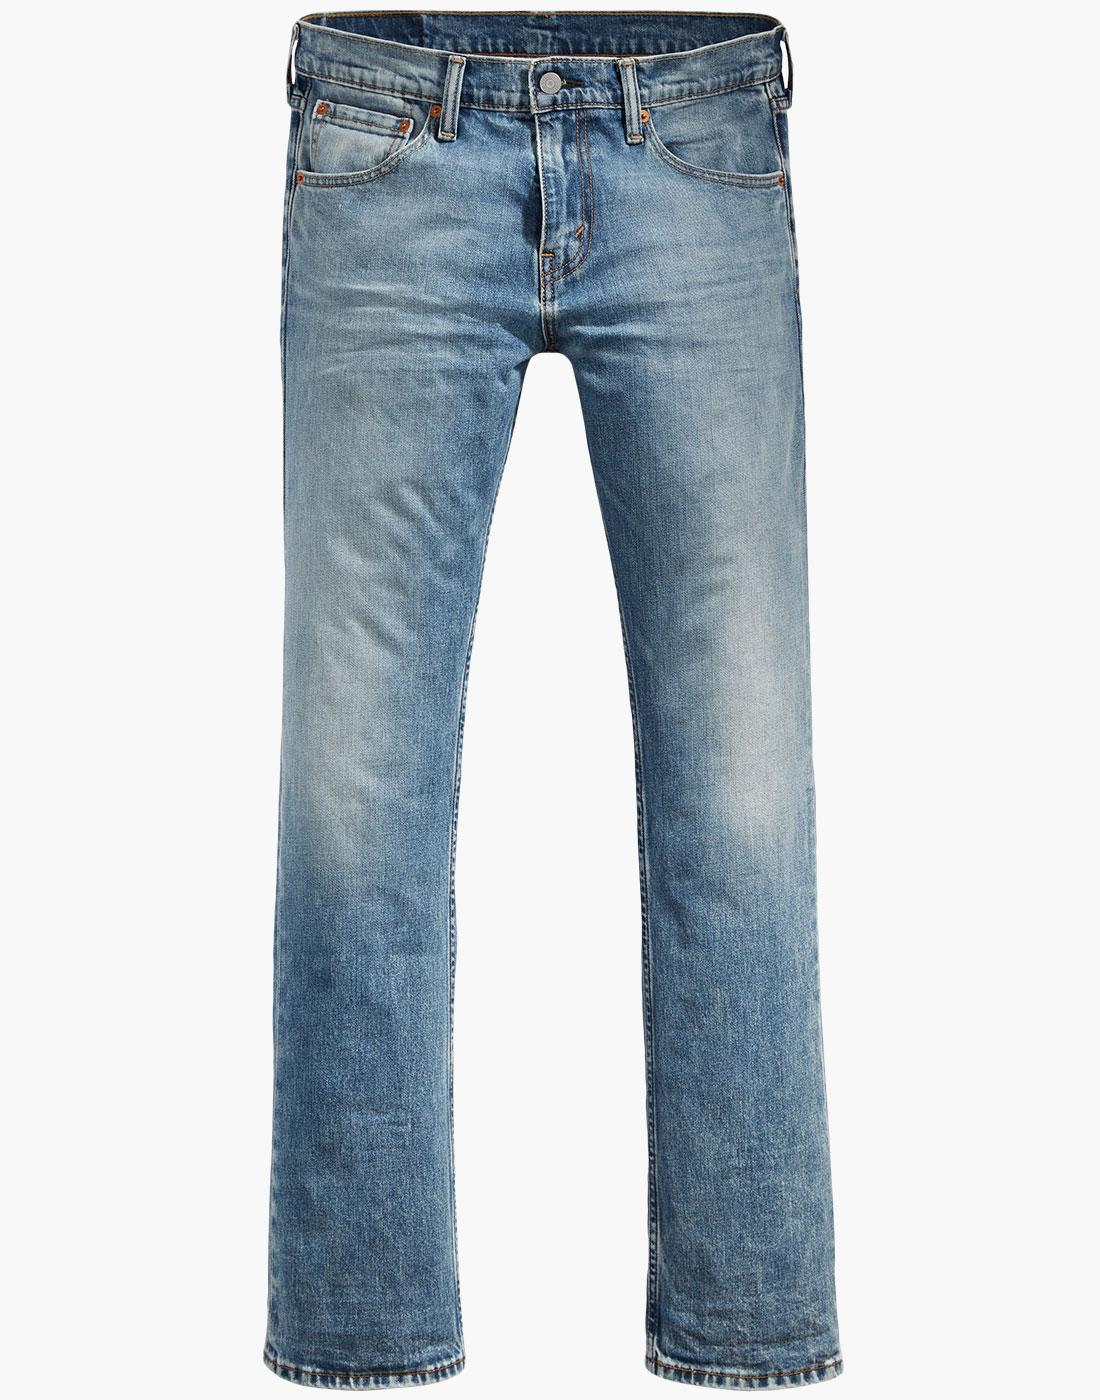 LEVI'S 527 Retro Slim Bootcut Jeans FIGURE FOUR